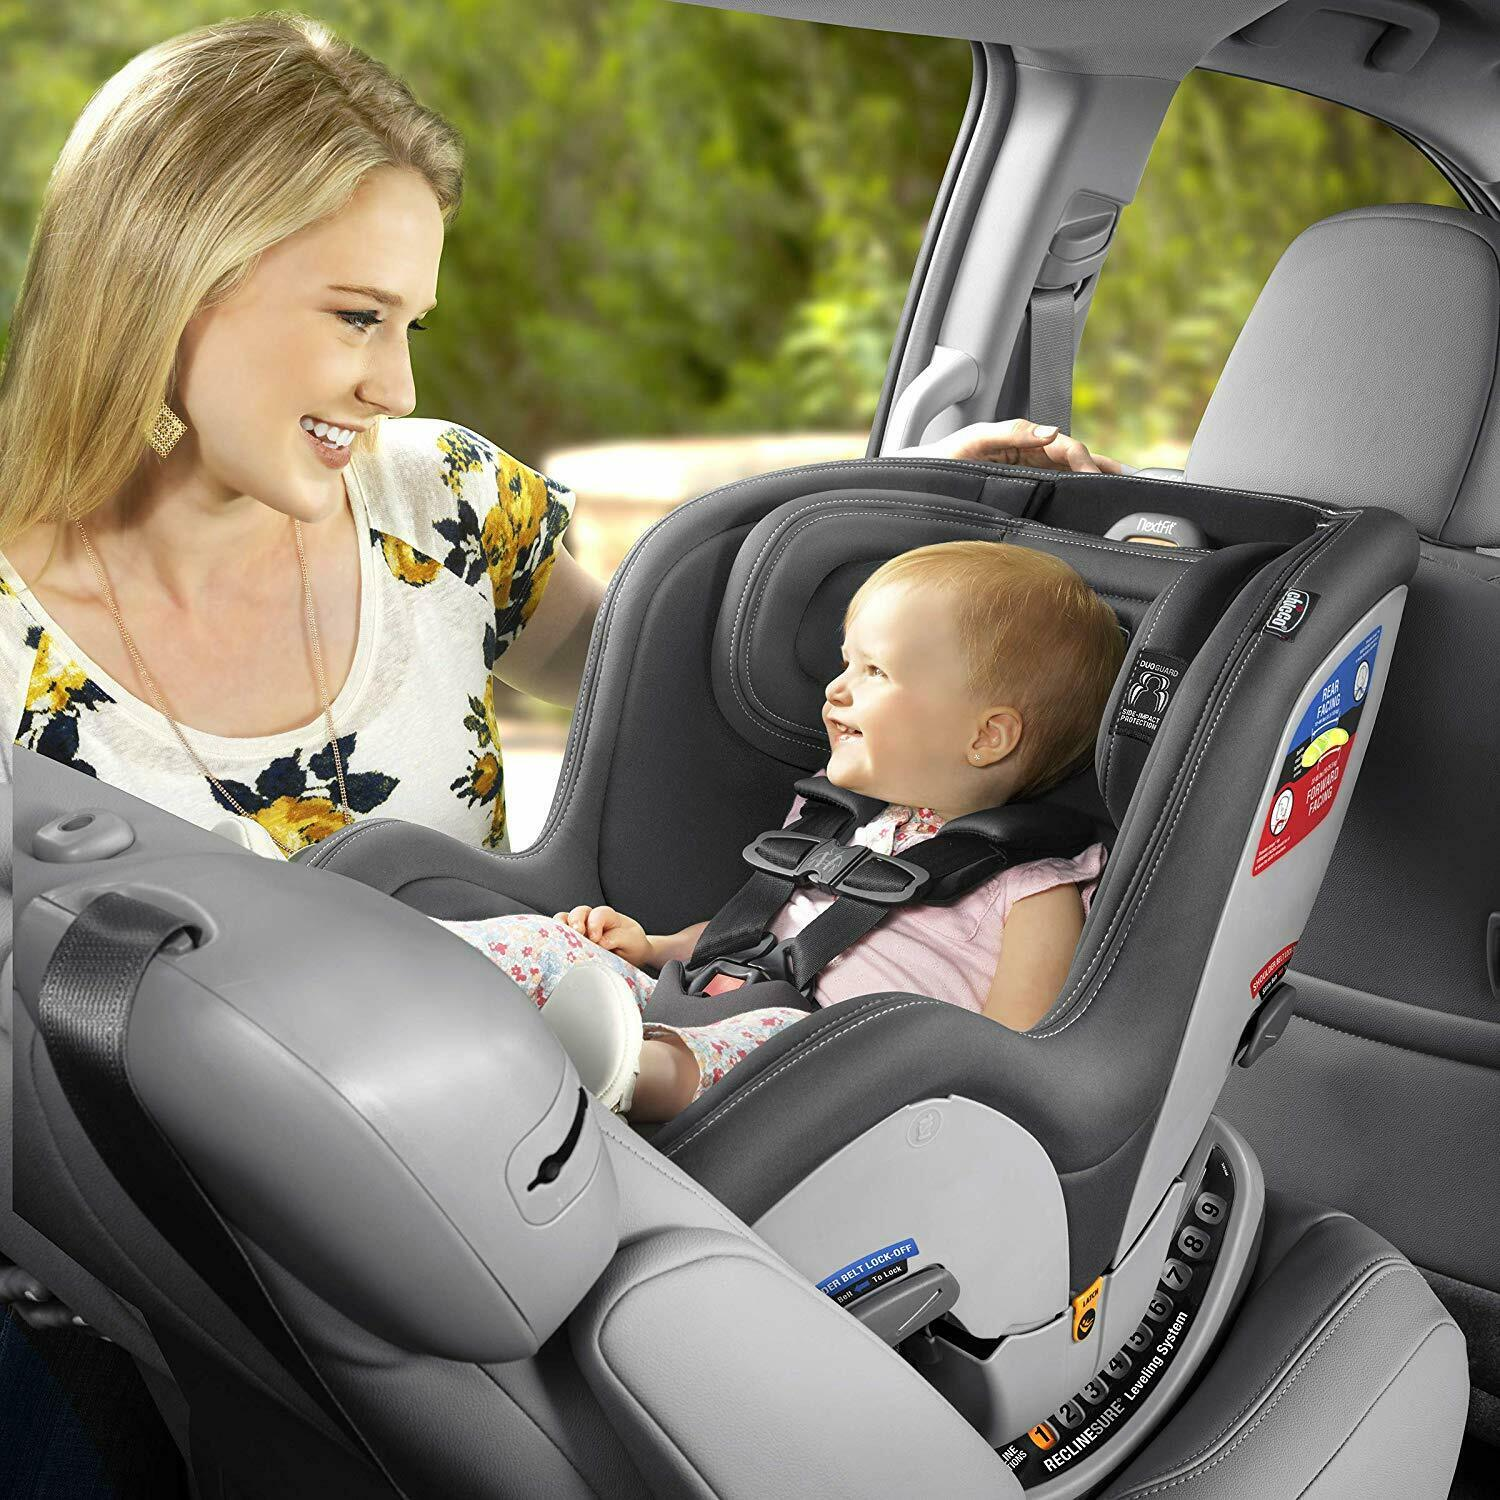 Chicco NextFit Sport Convertible Car Seat - Black